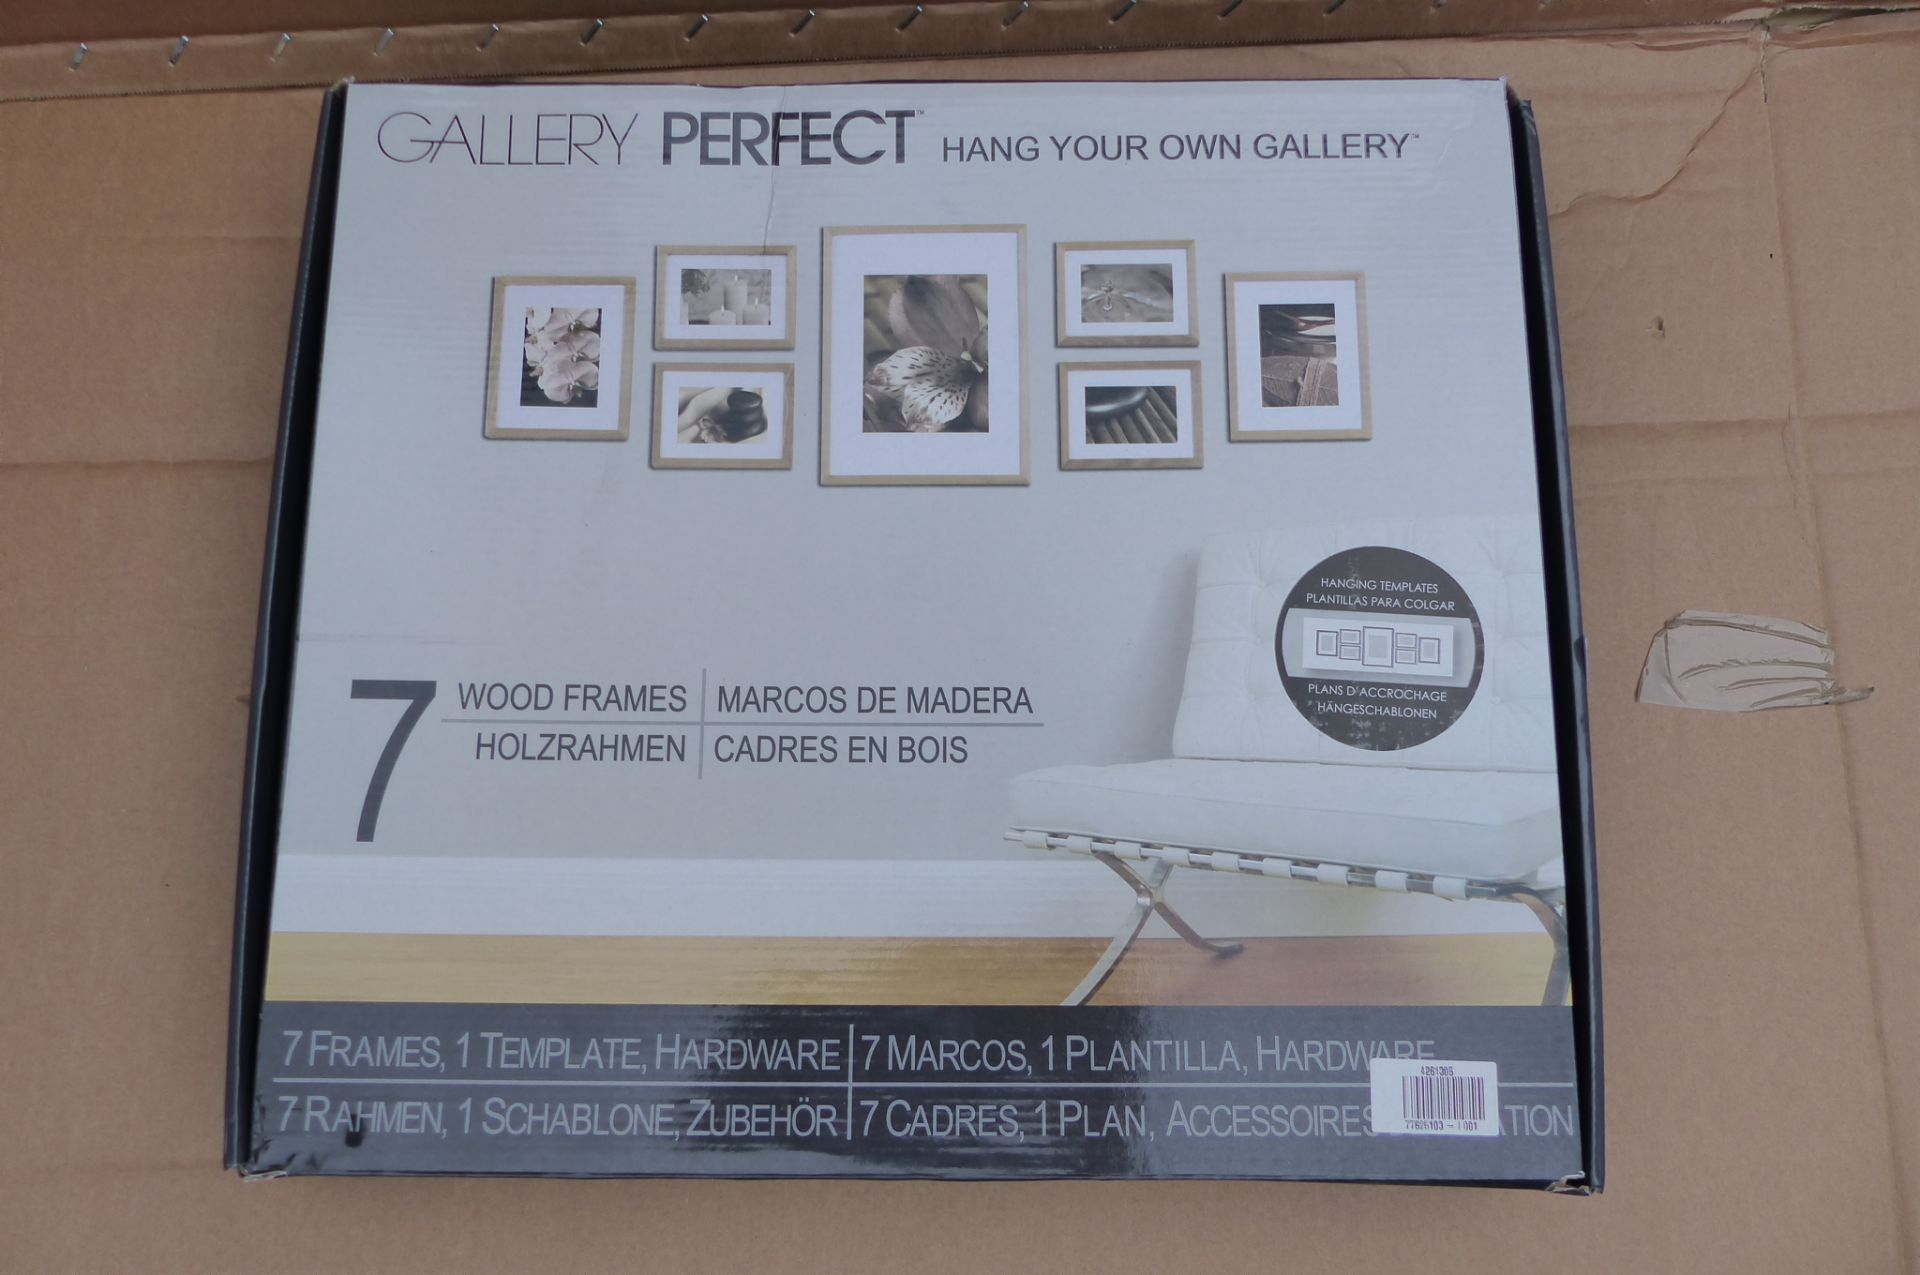 Gallery Perfect picture hanging frames